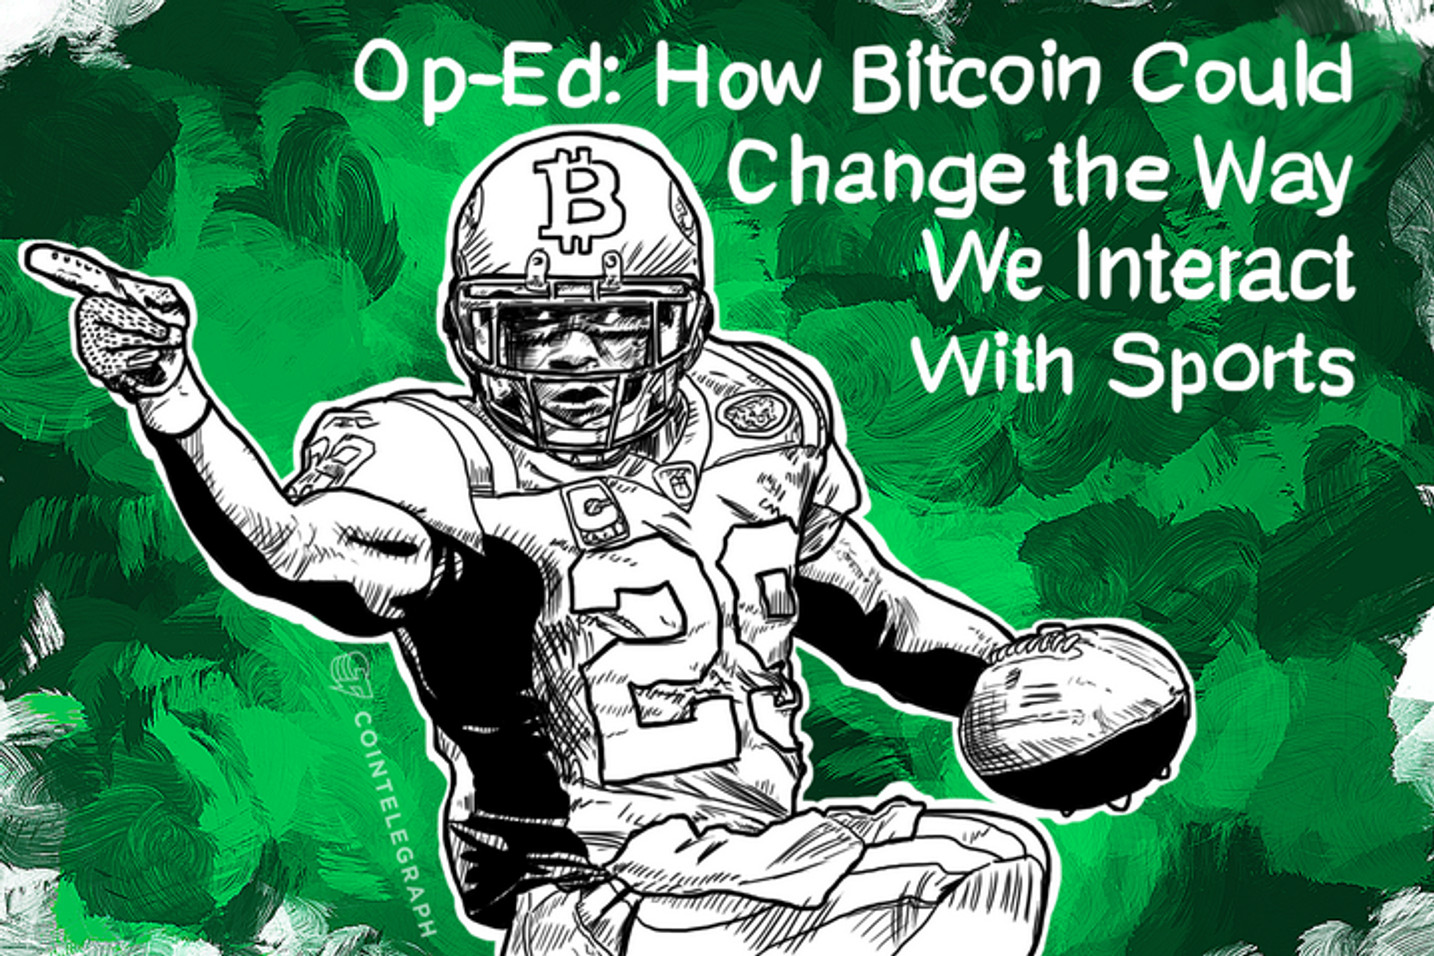 Op-Ed: How Bitcoin Could Change How We Interact With Sports